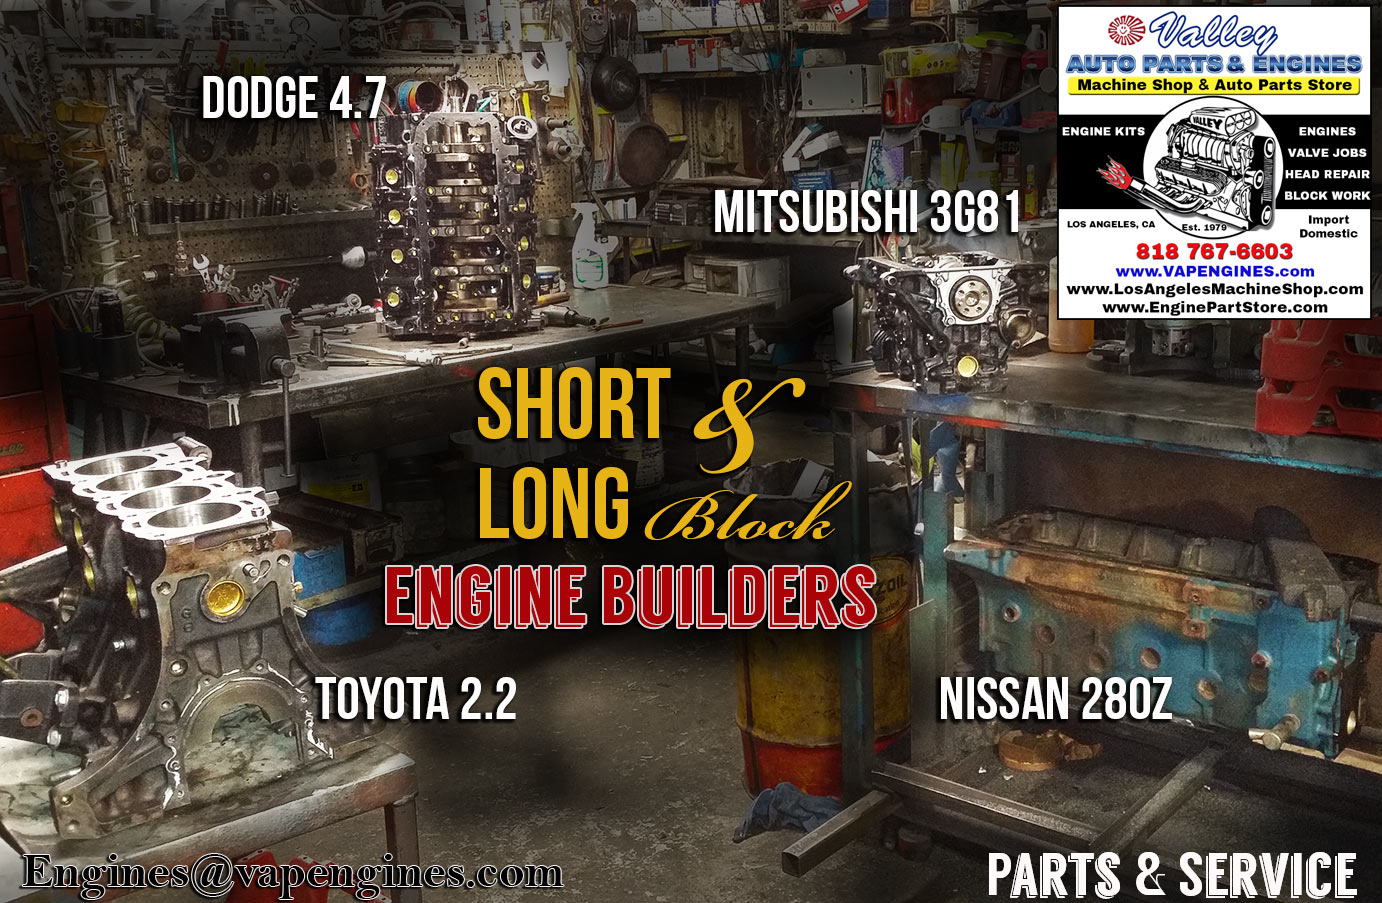 Short and Long block engine rebuilding service